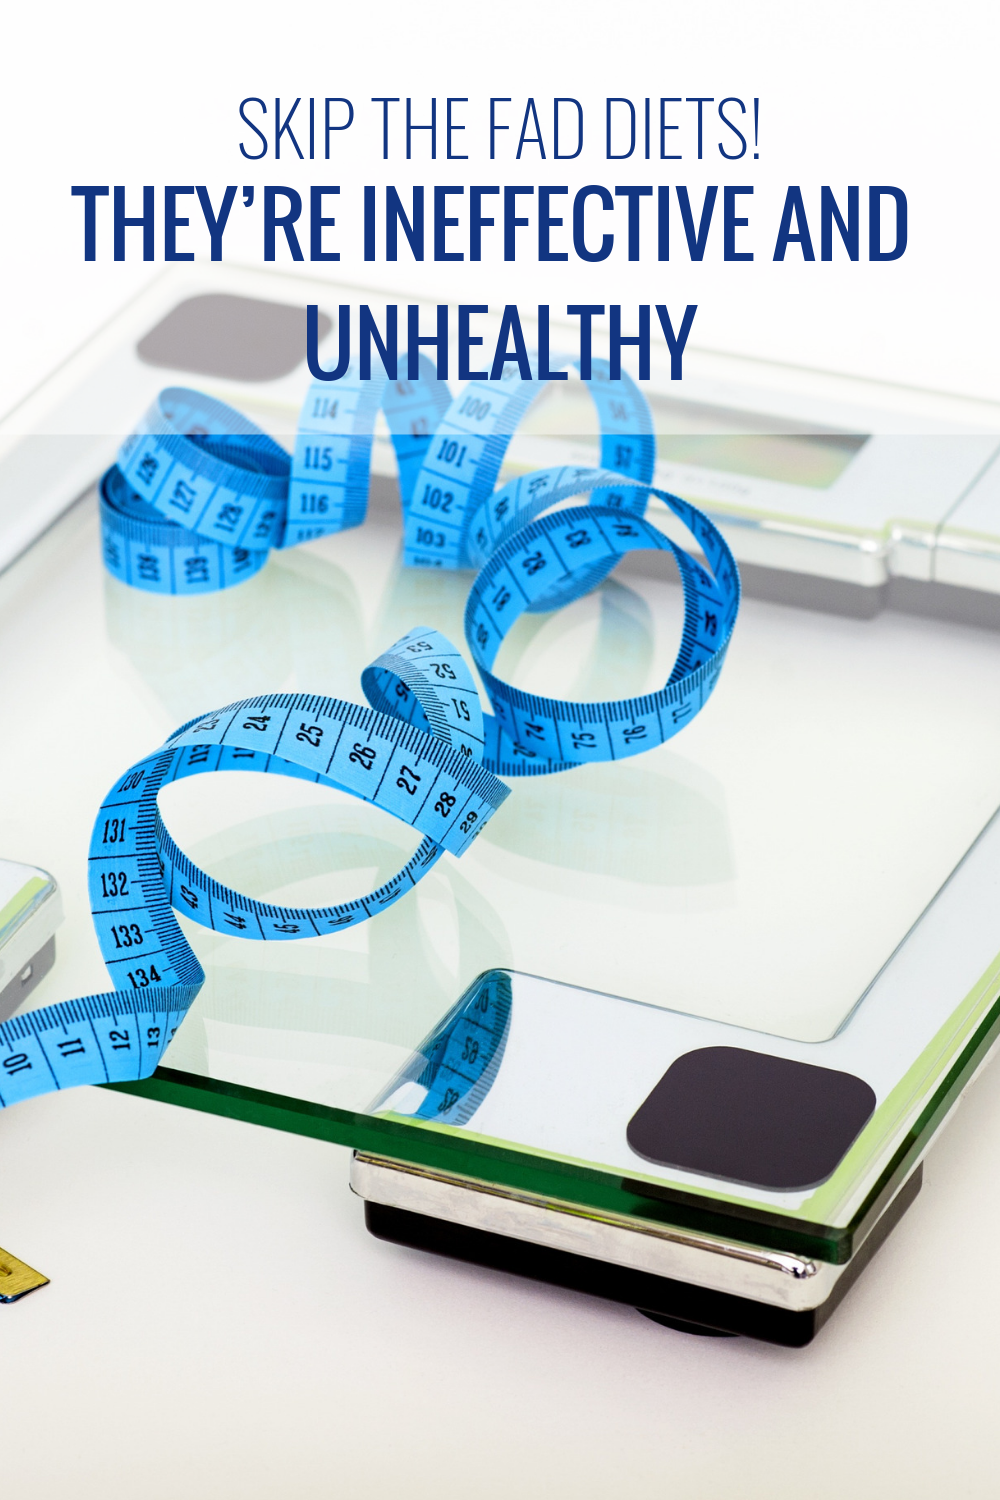 Skip the Fad Diets! They're Ineffective and Unhealthy